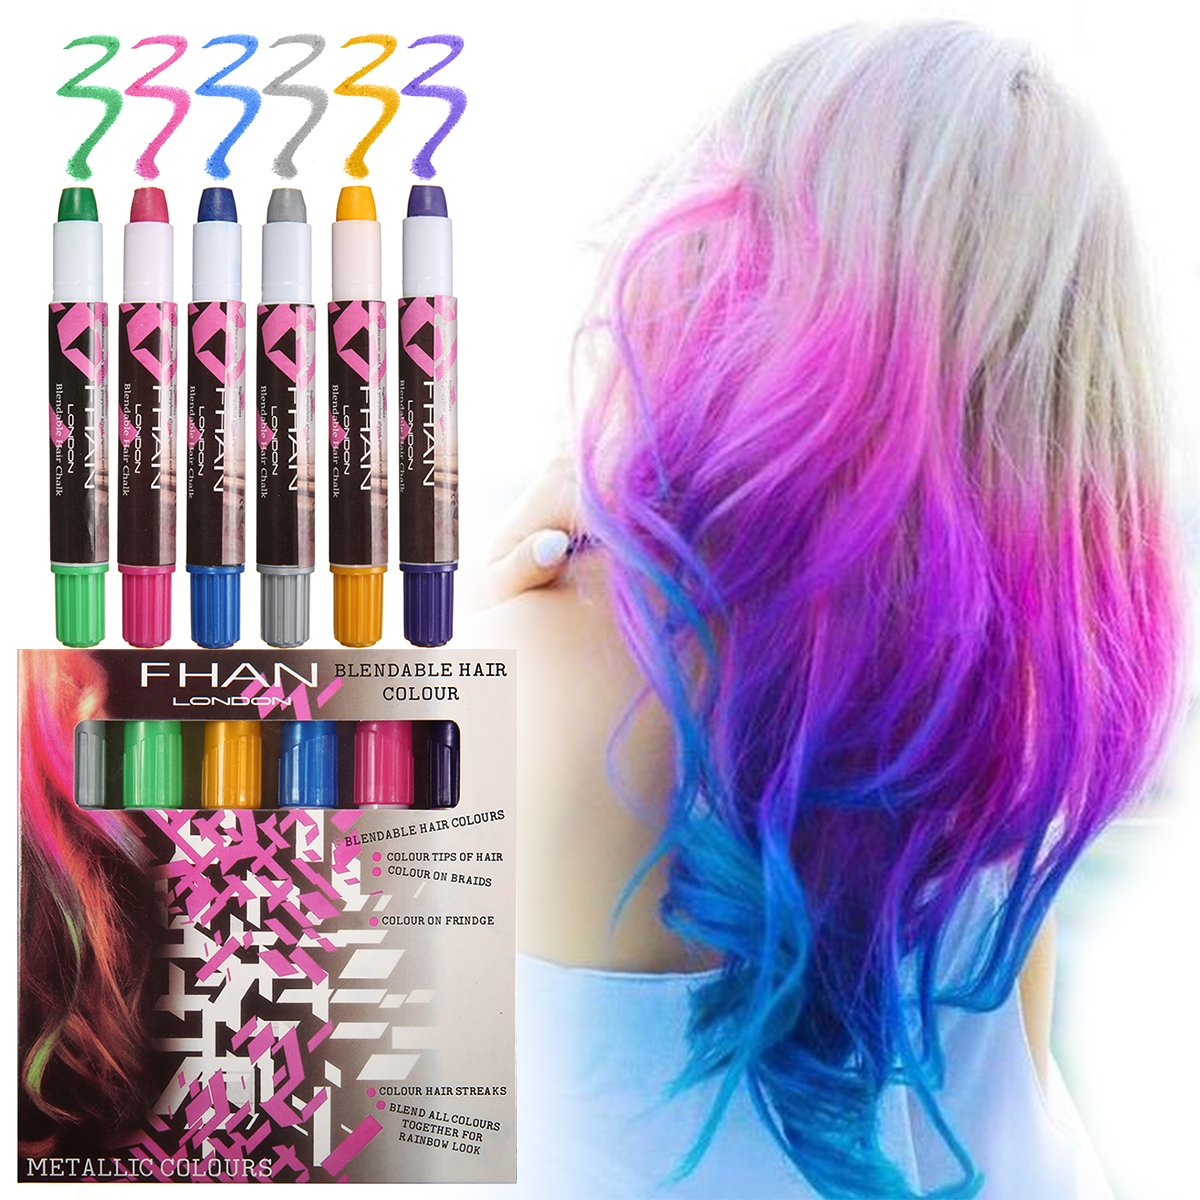 6 Colors Temporary Hair Chalk Pens, Y.F.M Temporary Hair Dye, Hair Chalk Set, Metallic Glitter Temporary Hair Color for Kids, Works on All Hair Colors